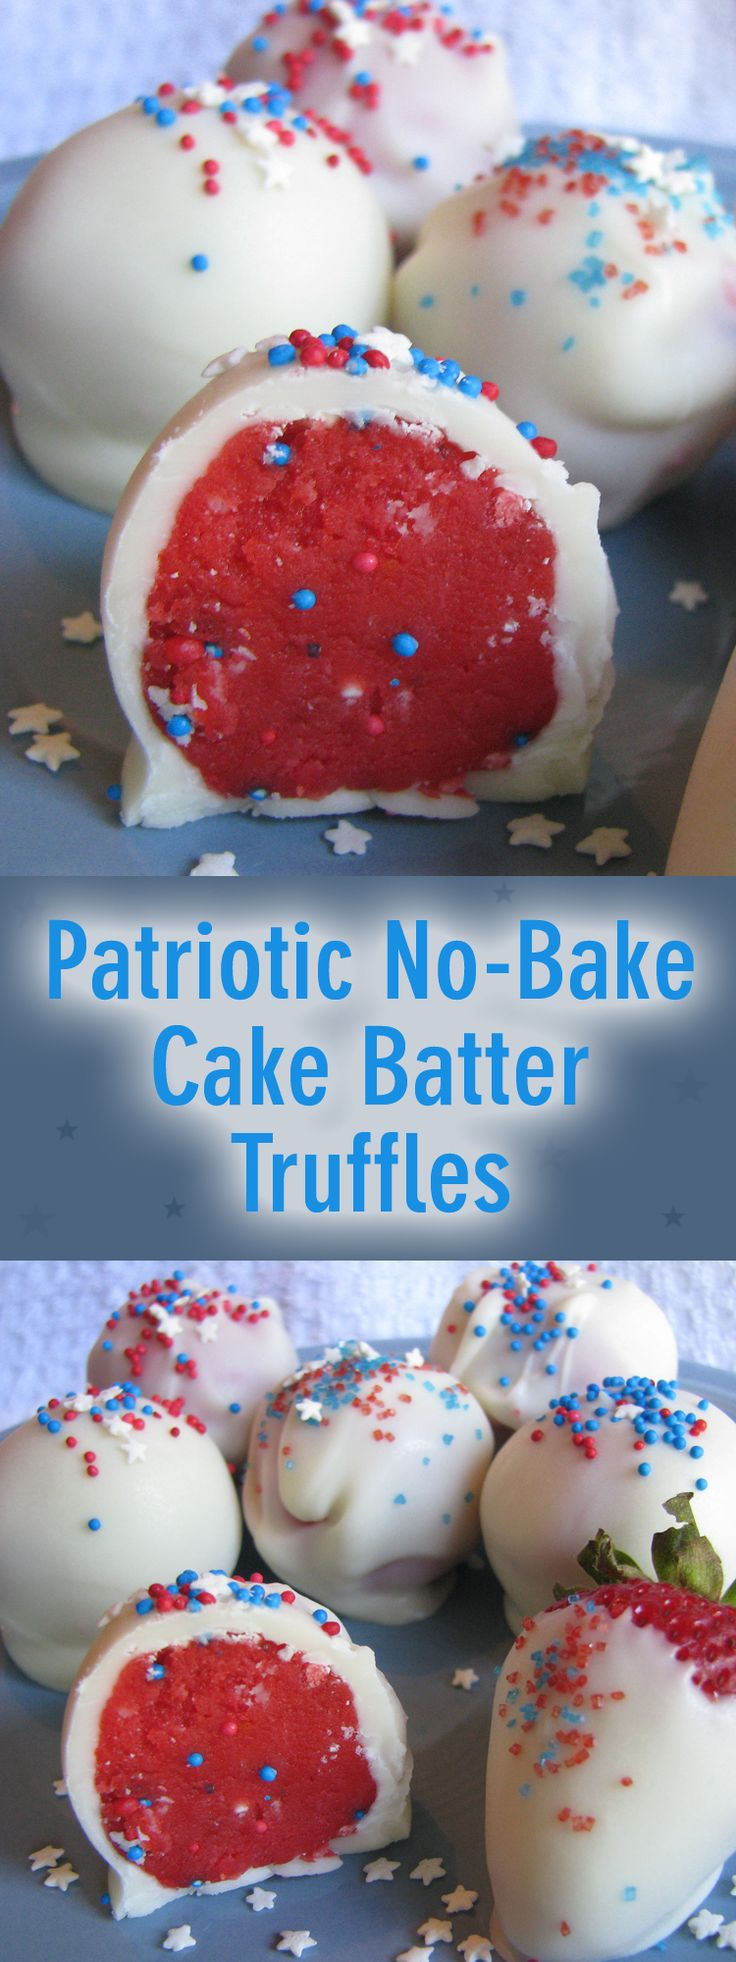 Patriotic No-Bake Cake Batter Truffles {pinned over 5K times}